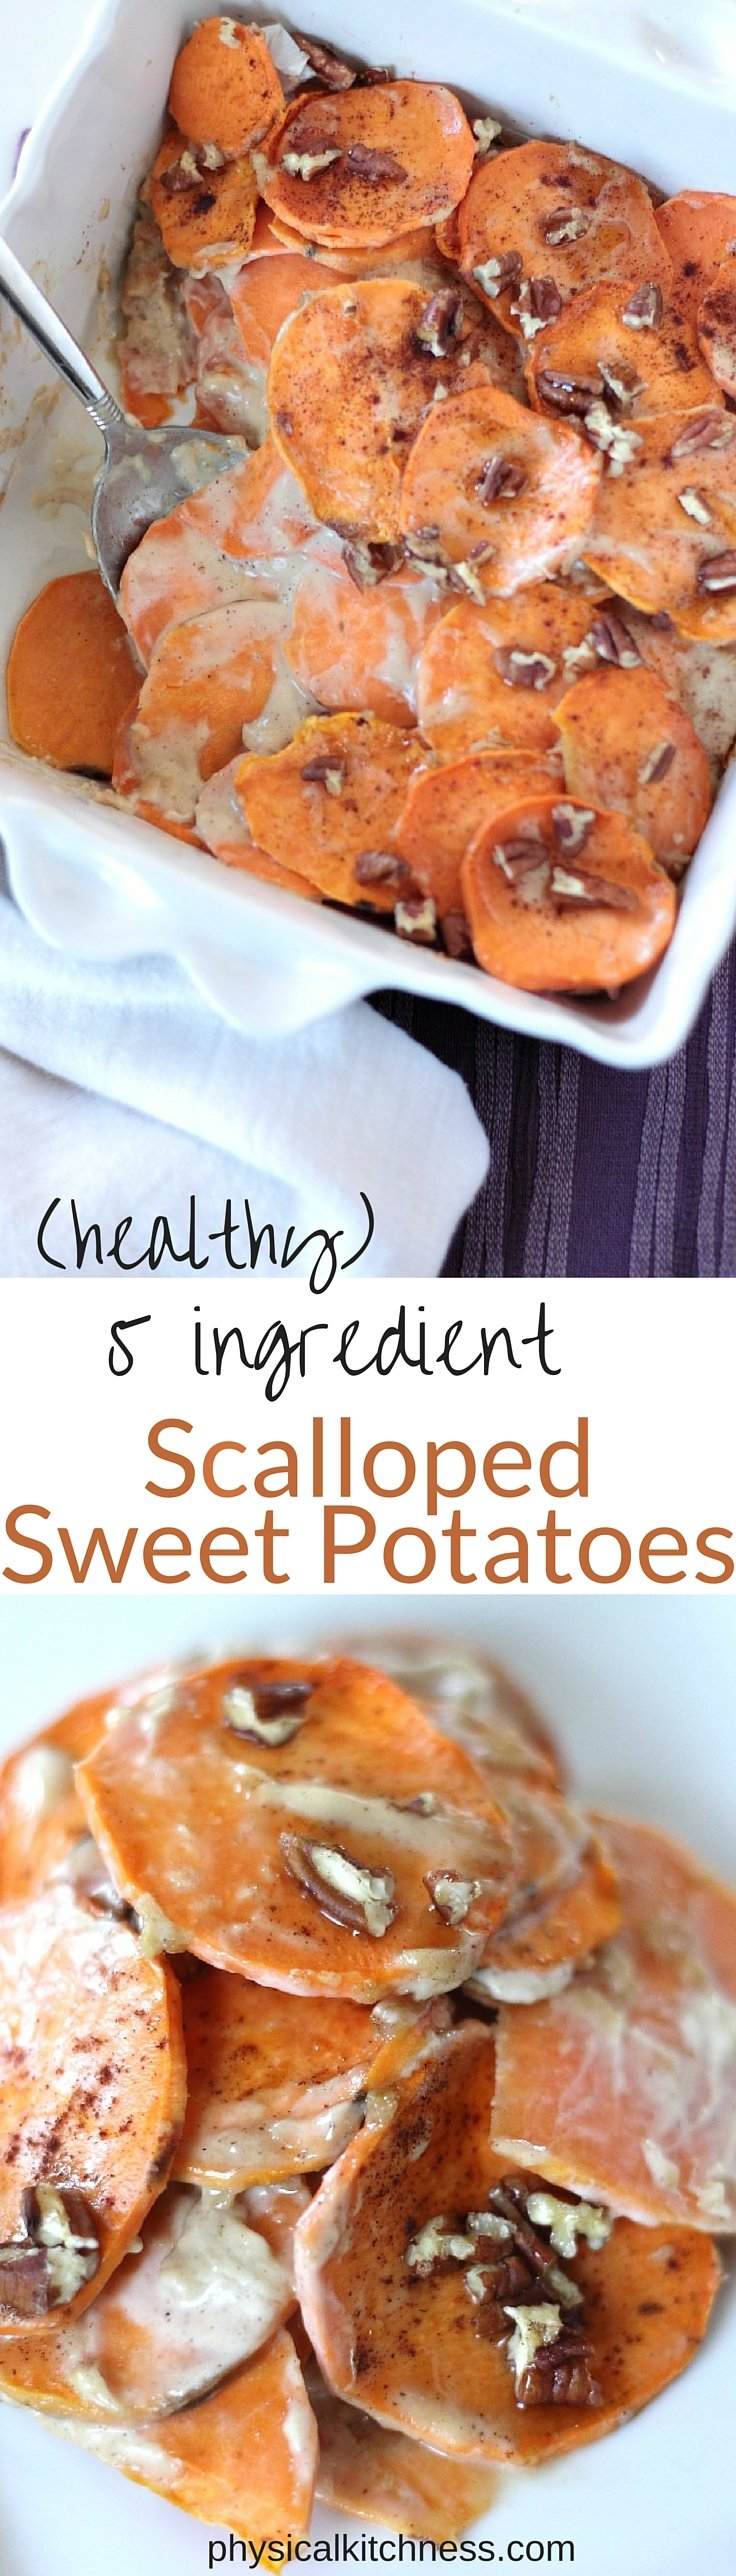 Healthy Scalloped Sweet Potatoes - Only 5 Ingredients! Plus they are Whole30 approved and vegan!